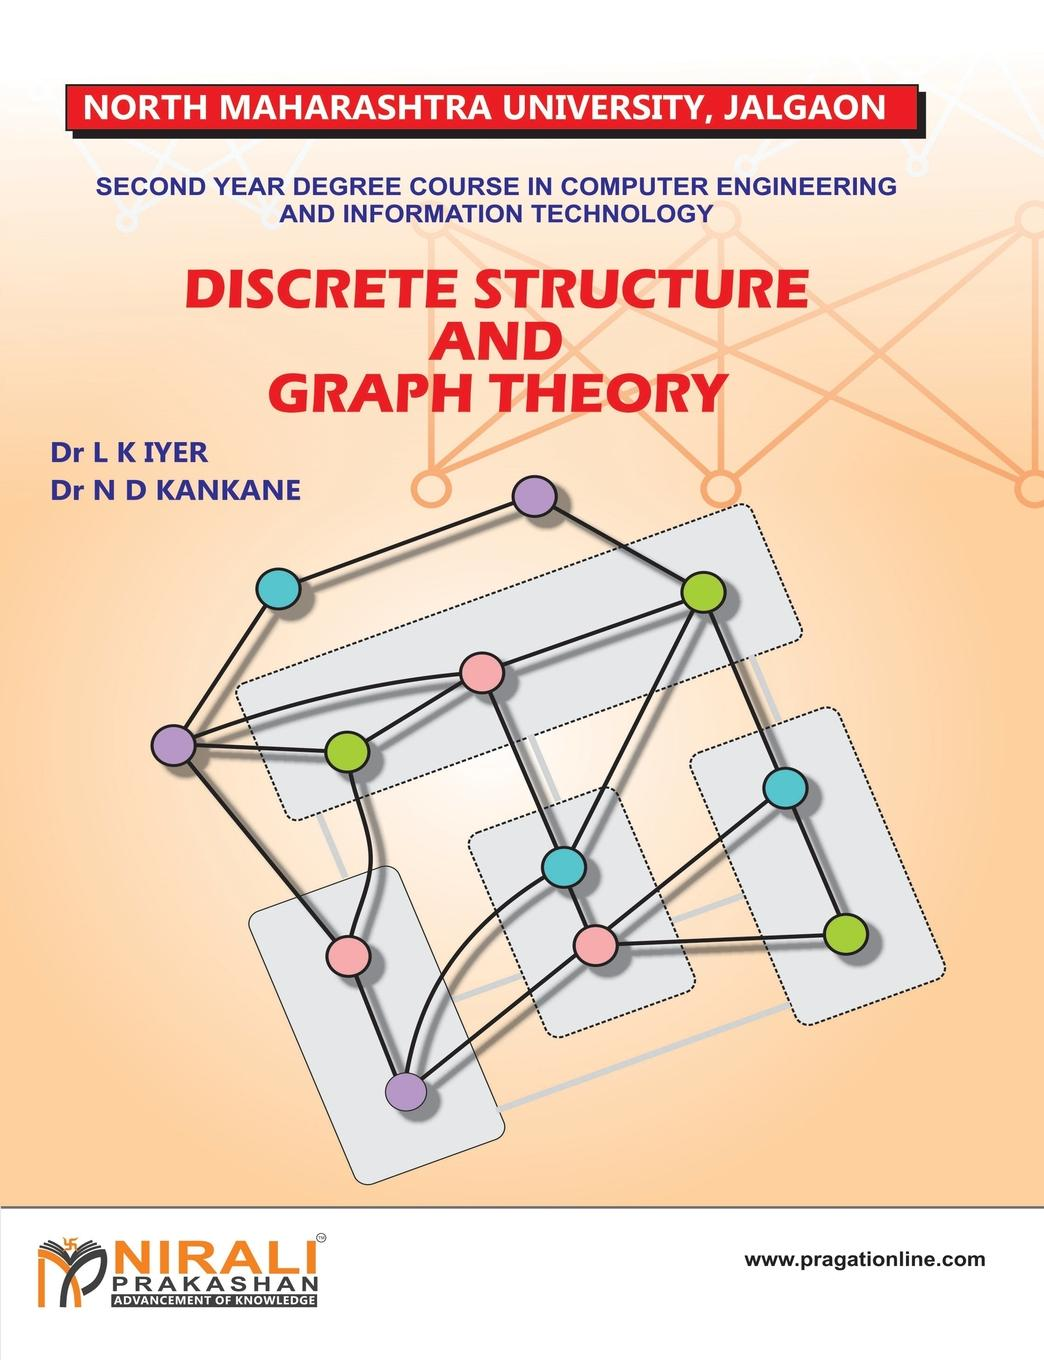 DR N D KANKANE, DR L K IYER DISCRETE STRUCTURE AND GRAPH THEORY bichot charles edmond graph partitioning